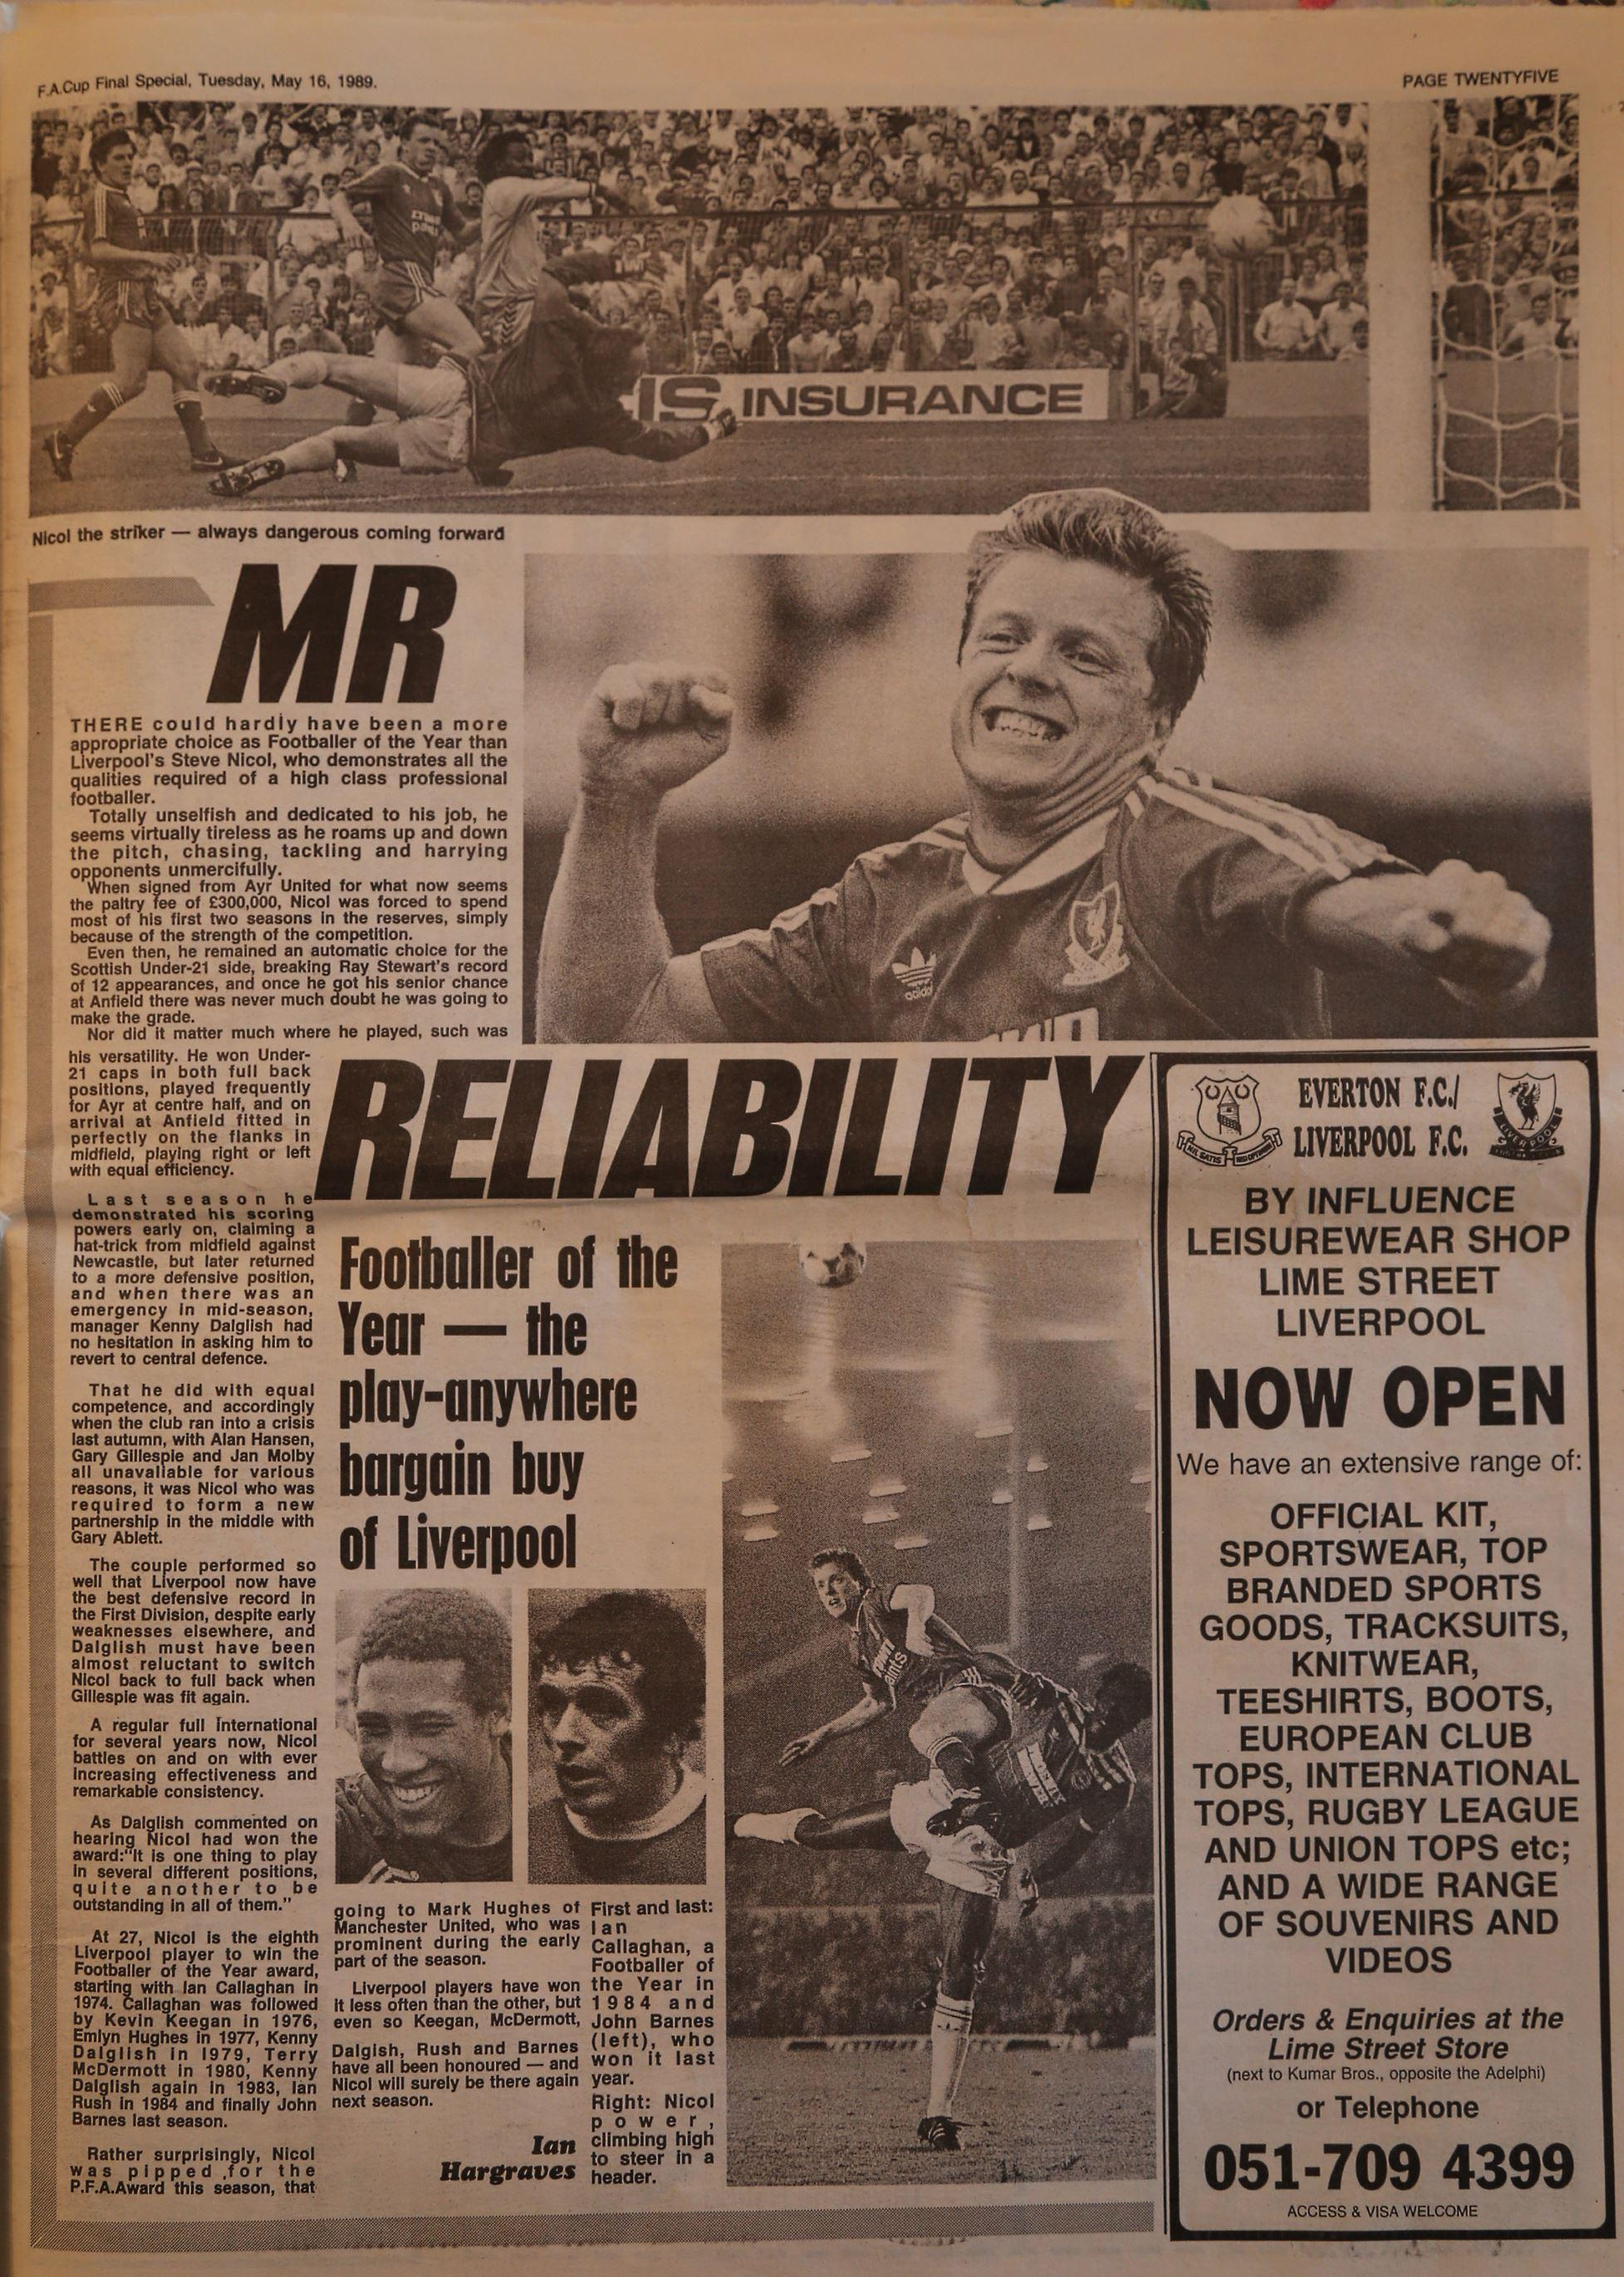 Nicol is Mr. Reliability! - 16 May 1989